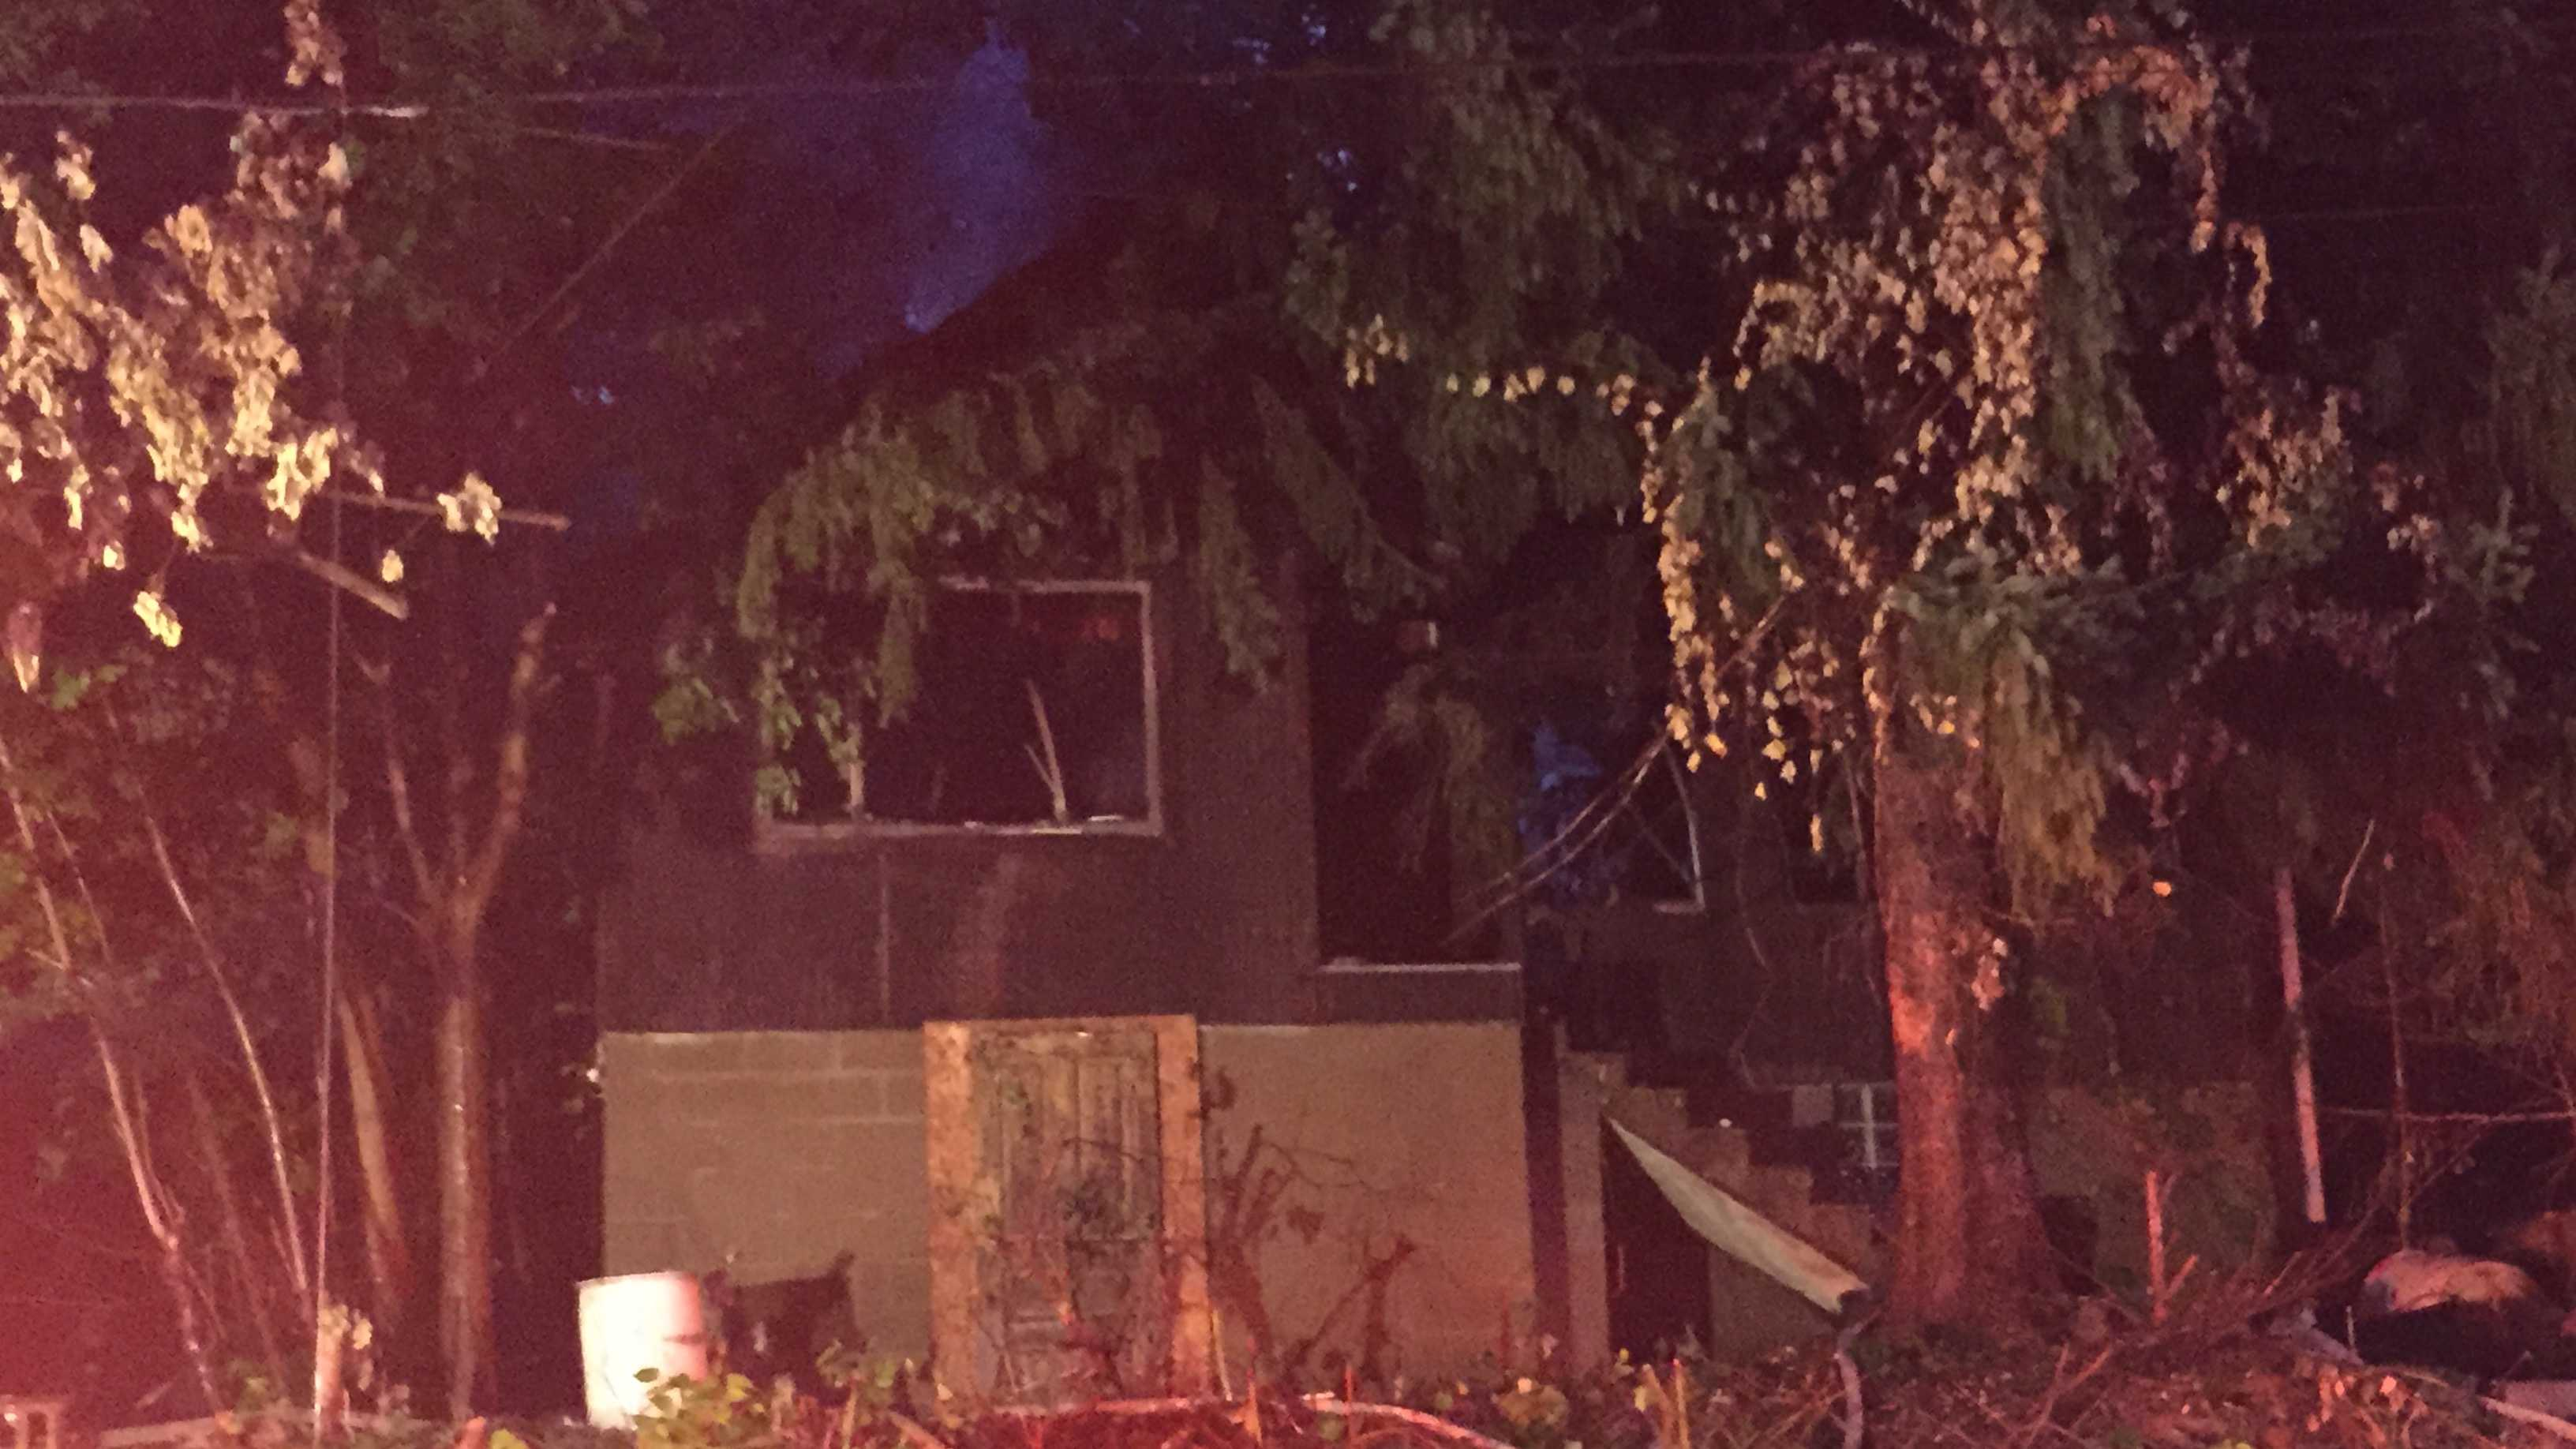 One firefighter taken to the hospital from the scene of an early morning fire in Wilkinsburg